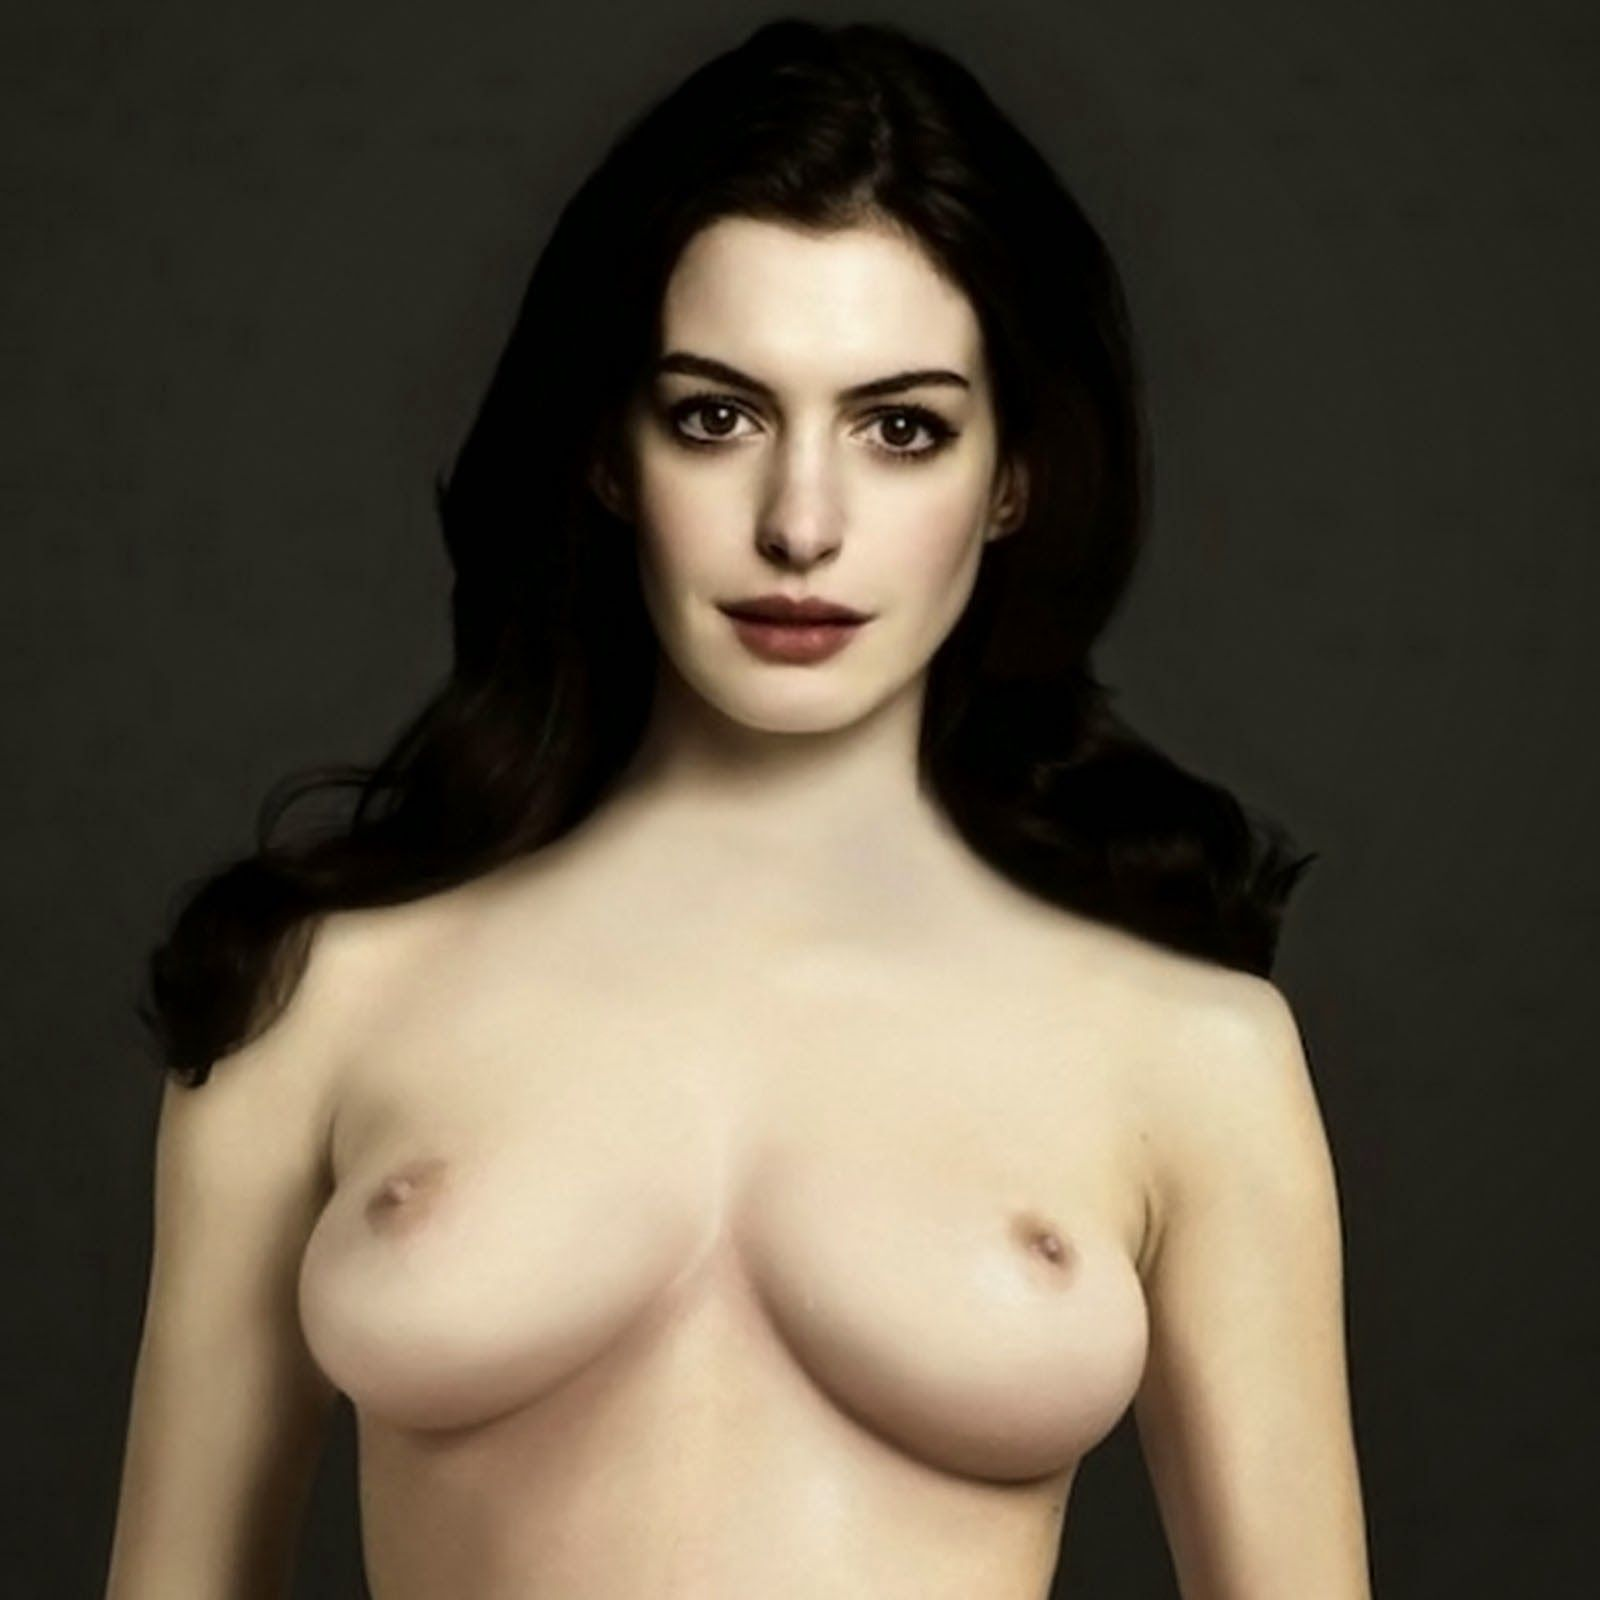 Anne Hathaway Porno anne hathaway naked clips . porn images. comments: 1